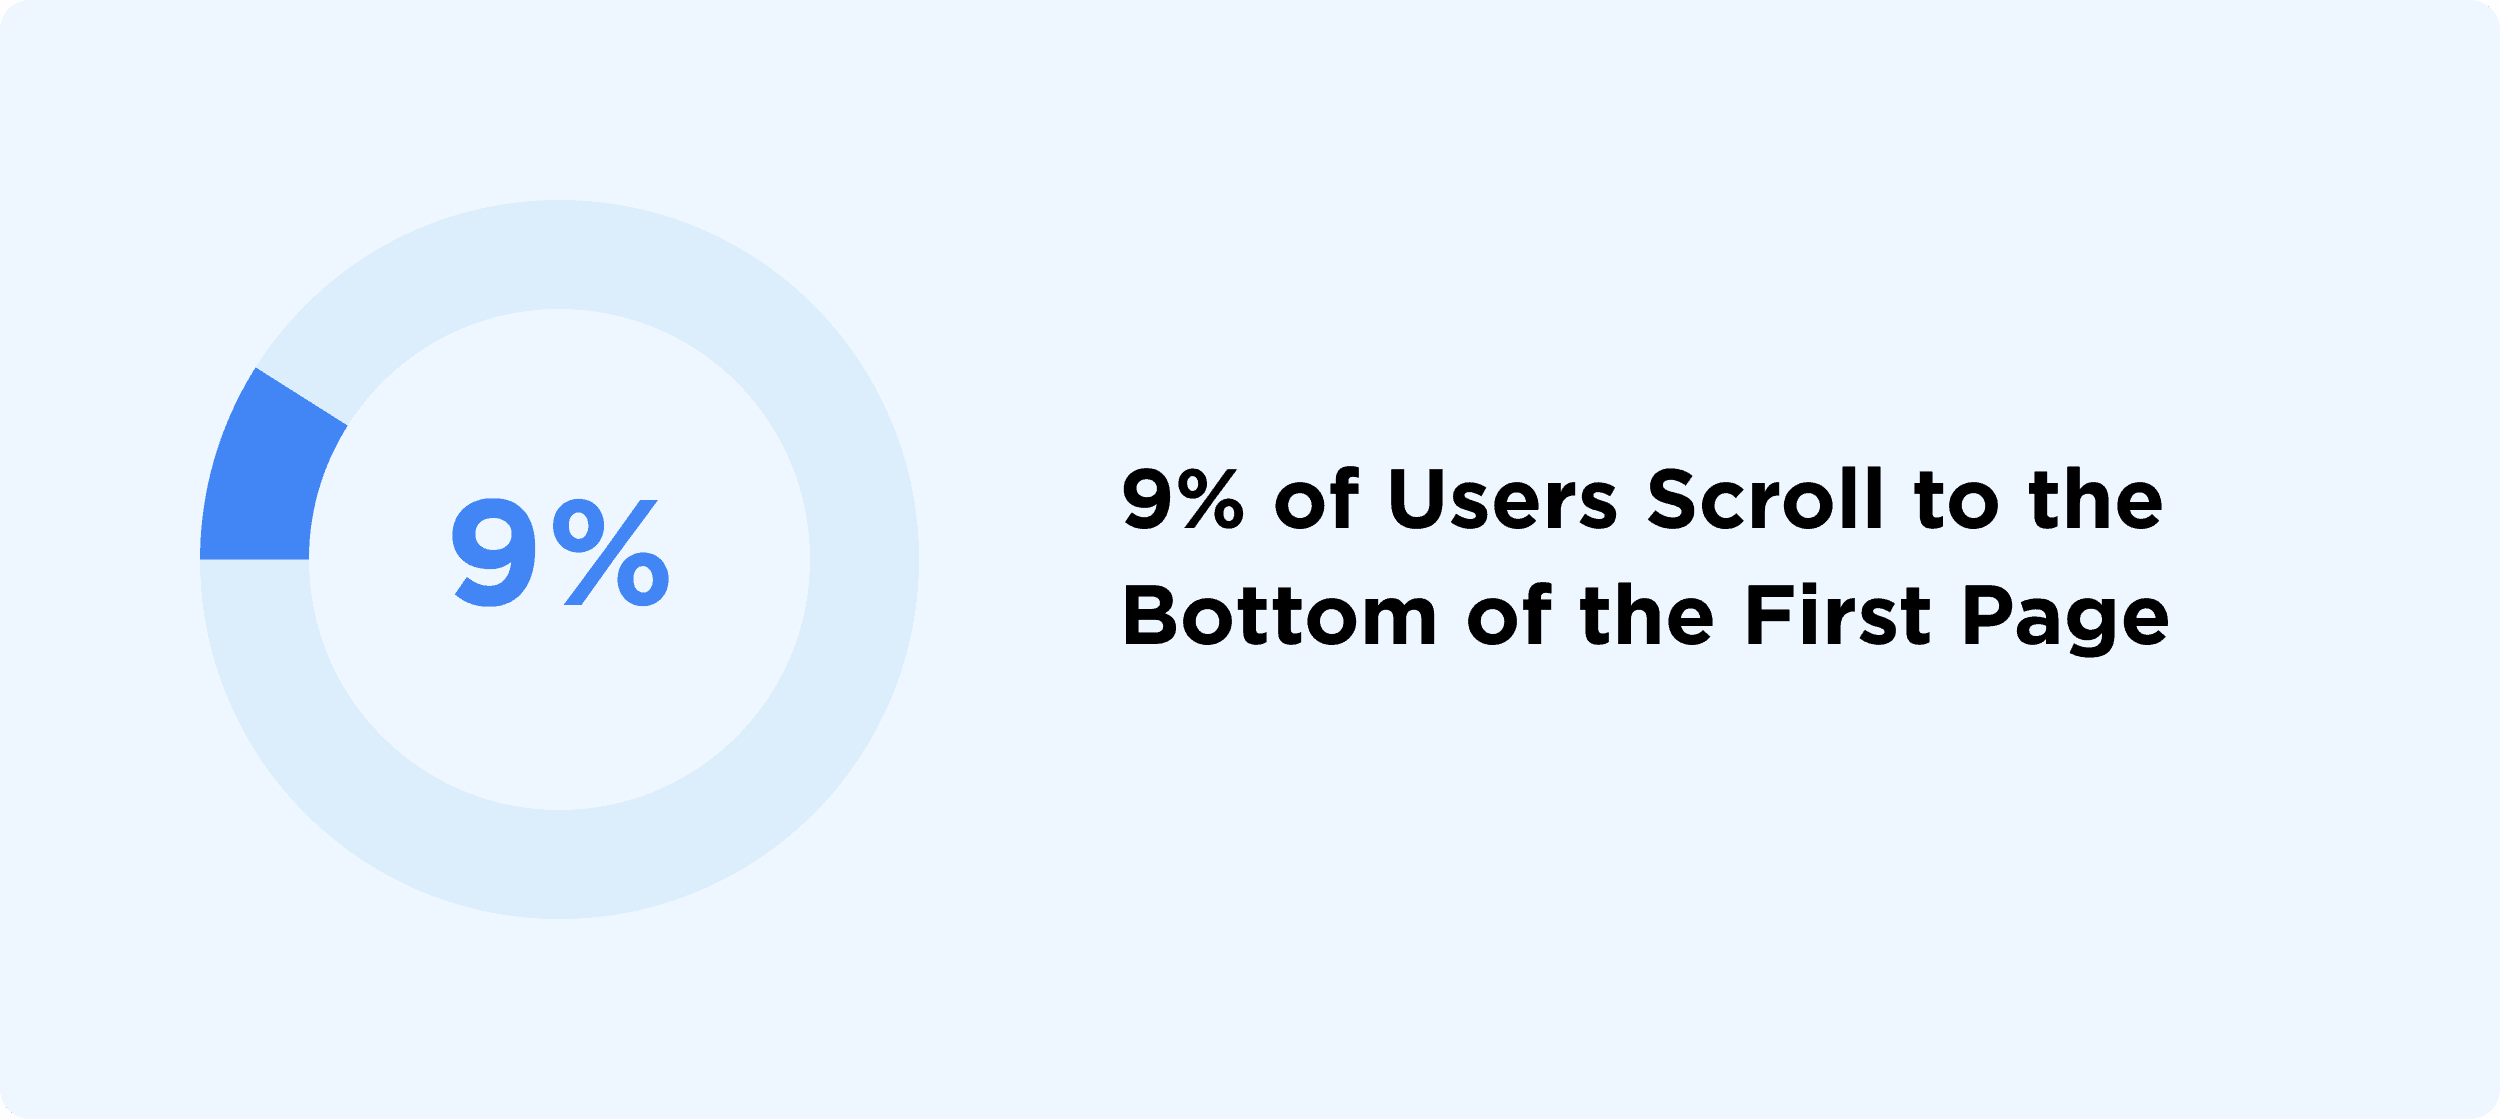 9% of Users Scroll to the Bottom of the First Page